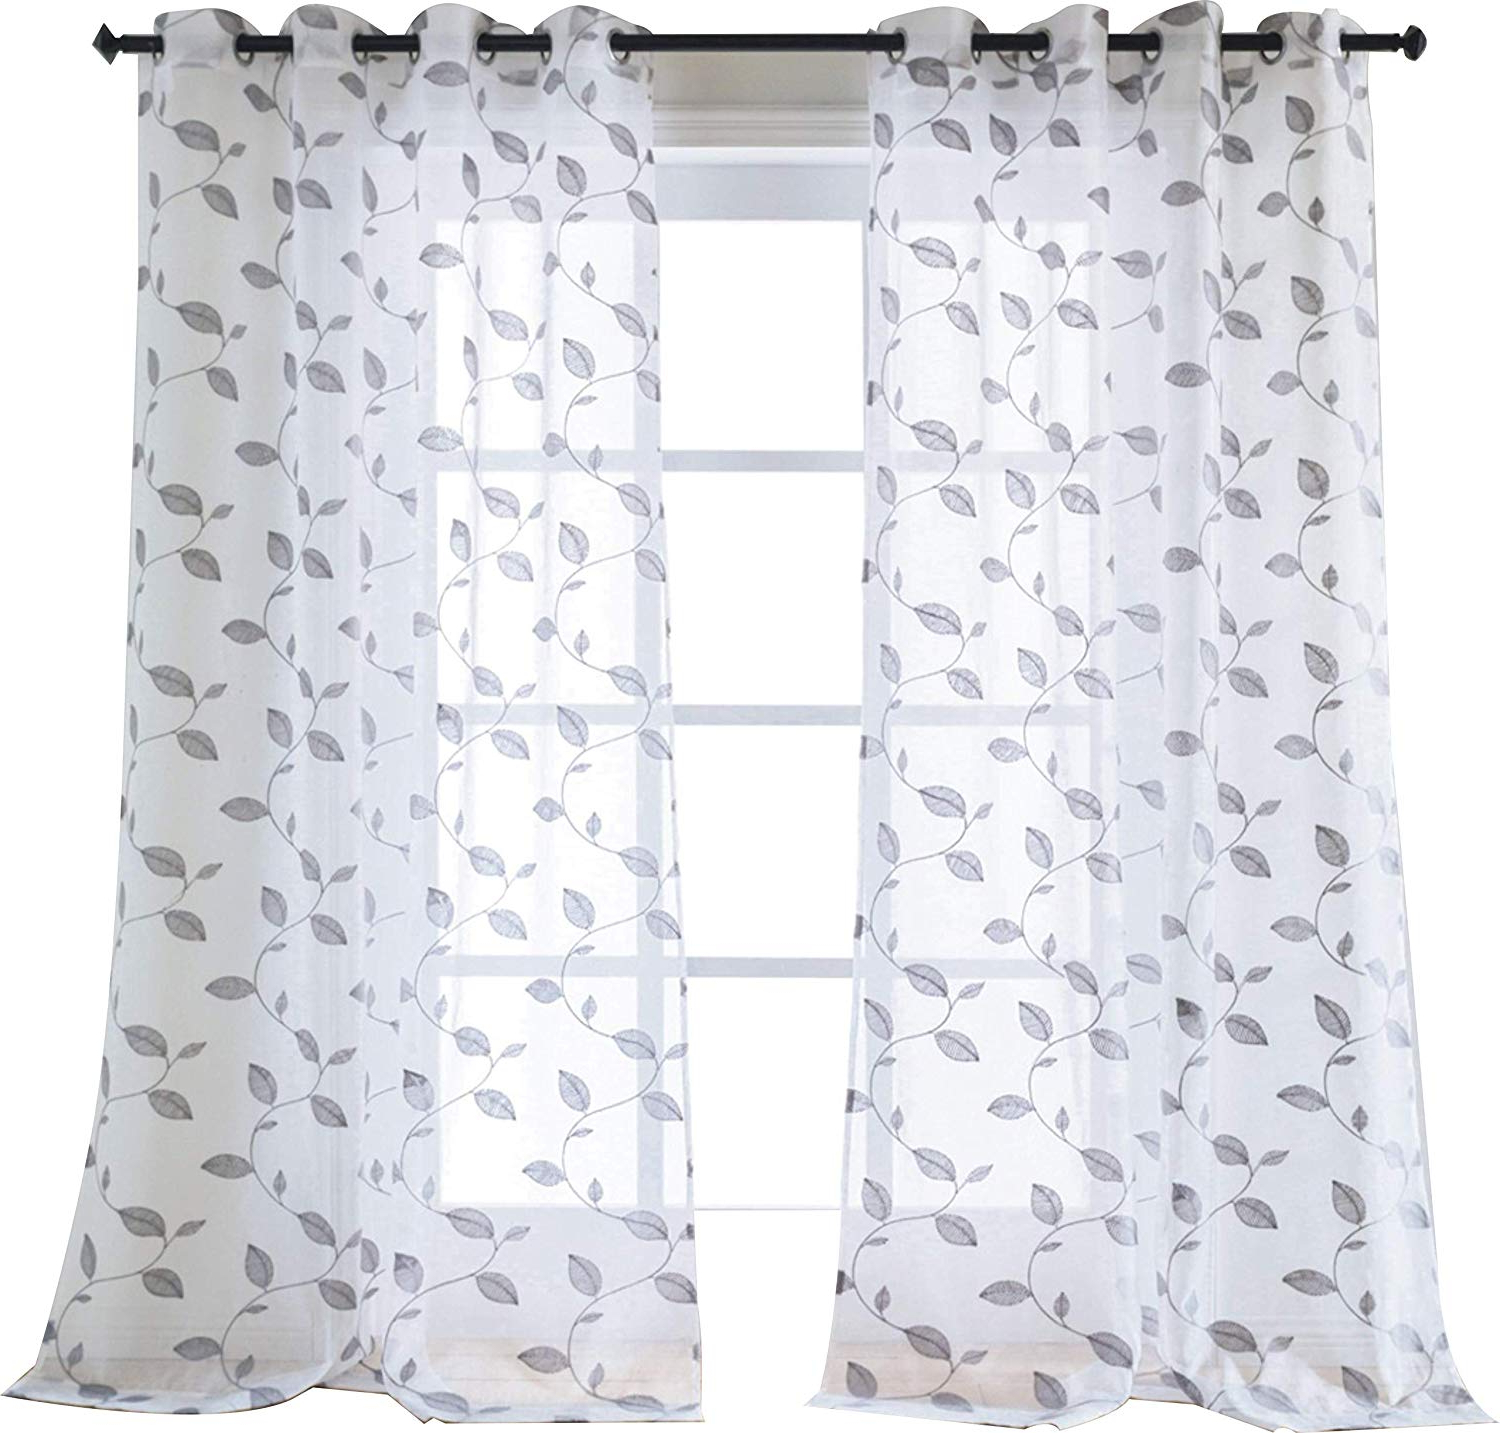 Best And Newest Wavy Leaves Embroidered Sheer Extra Wide Grommet Curtain Panels Pertaining To Amazon: Taisier Home Leaves Embroidered Semi Sheer Voile (View 19 of 20)